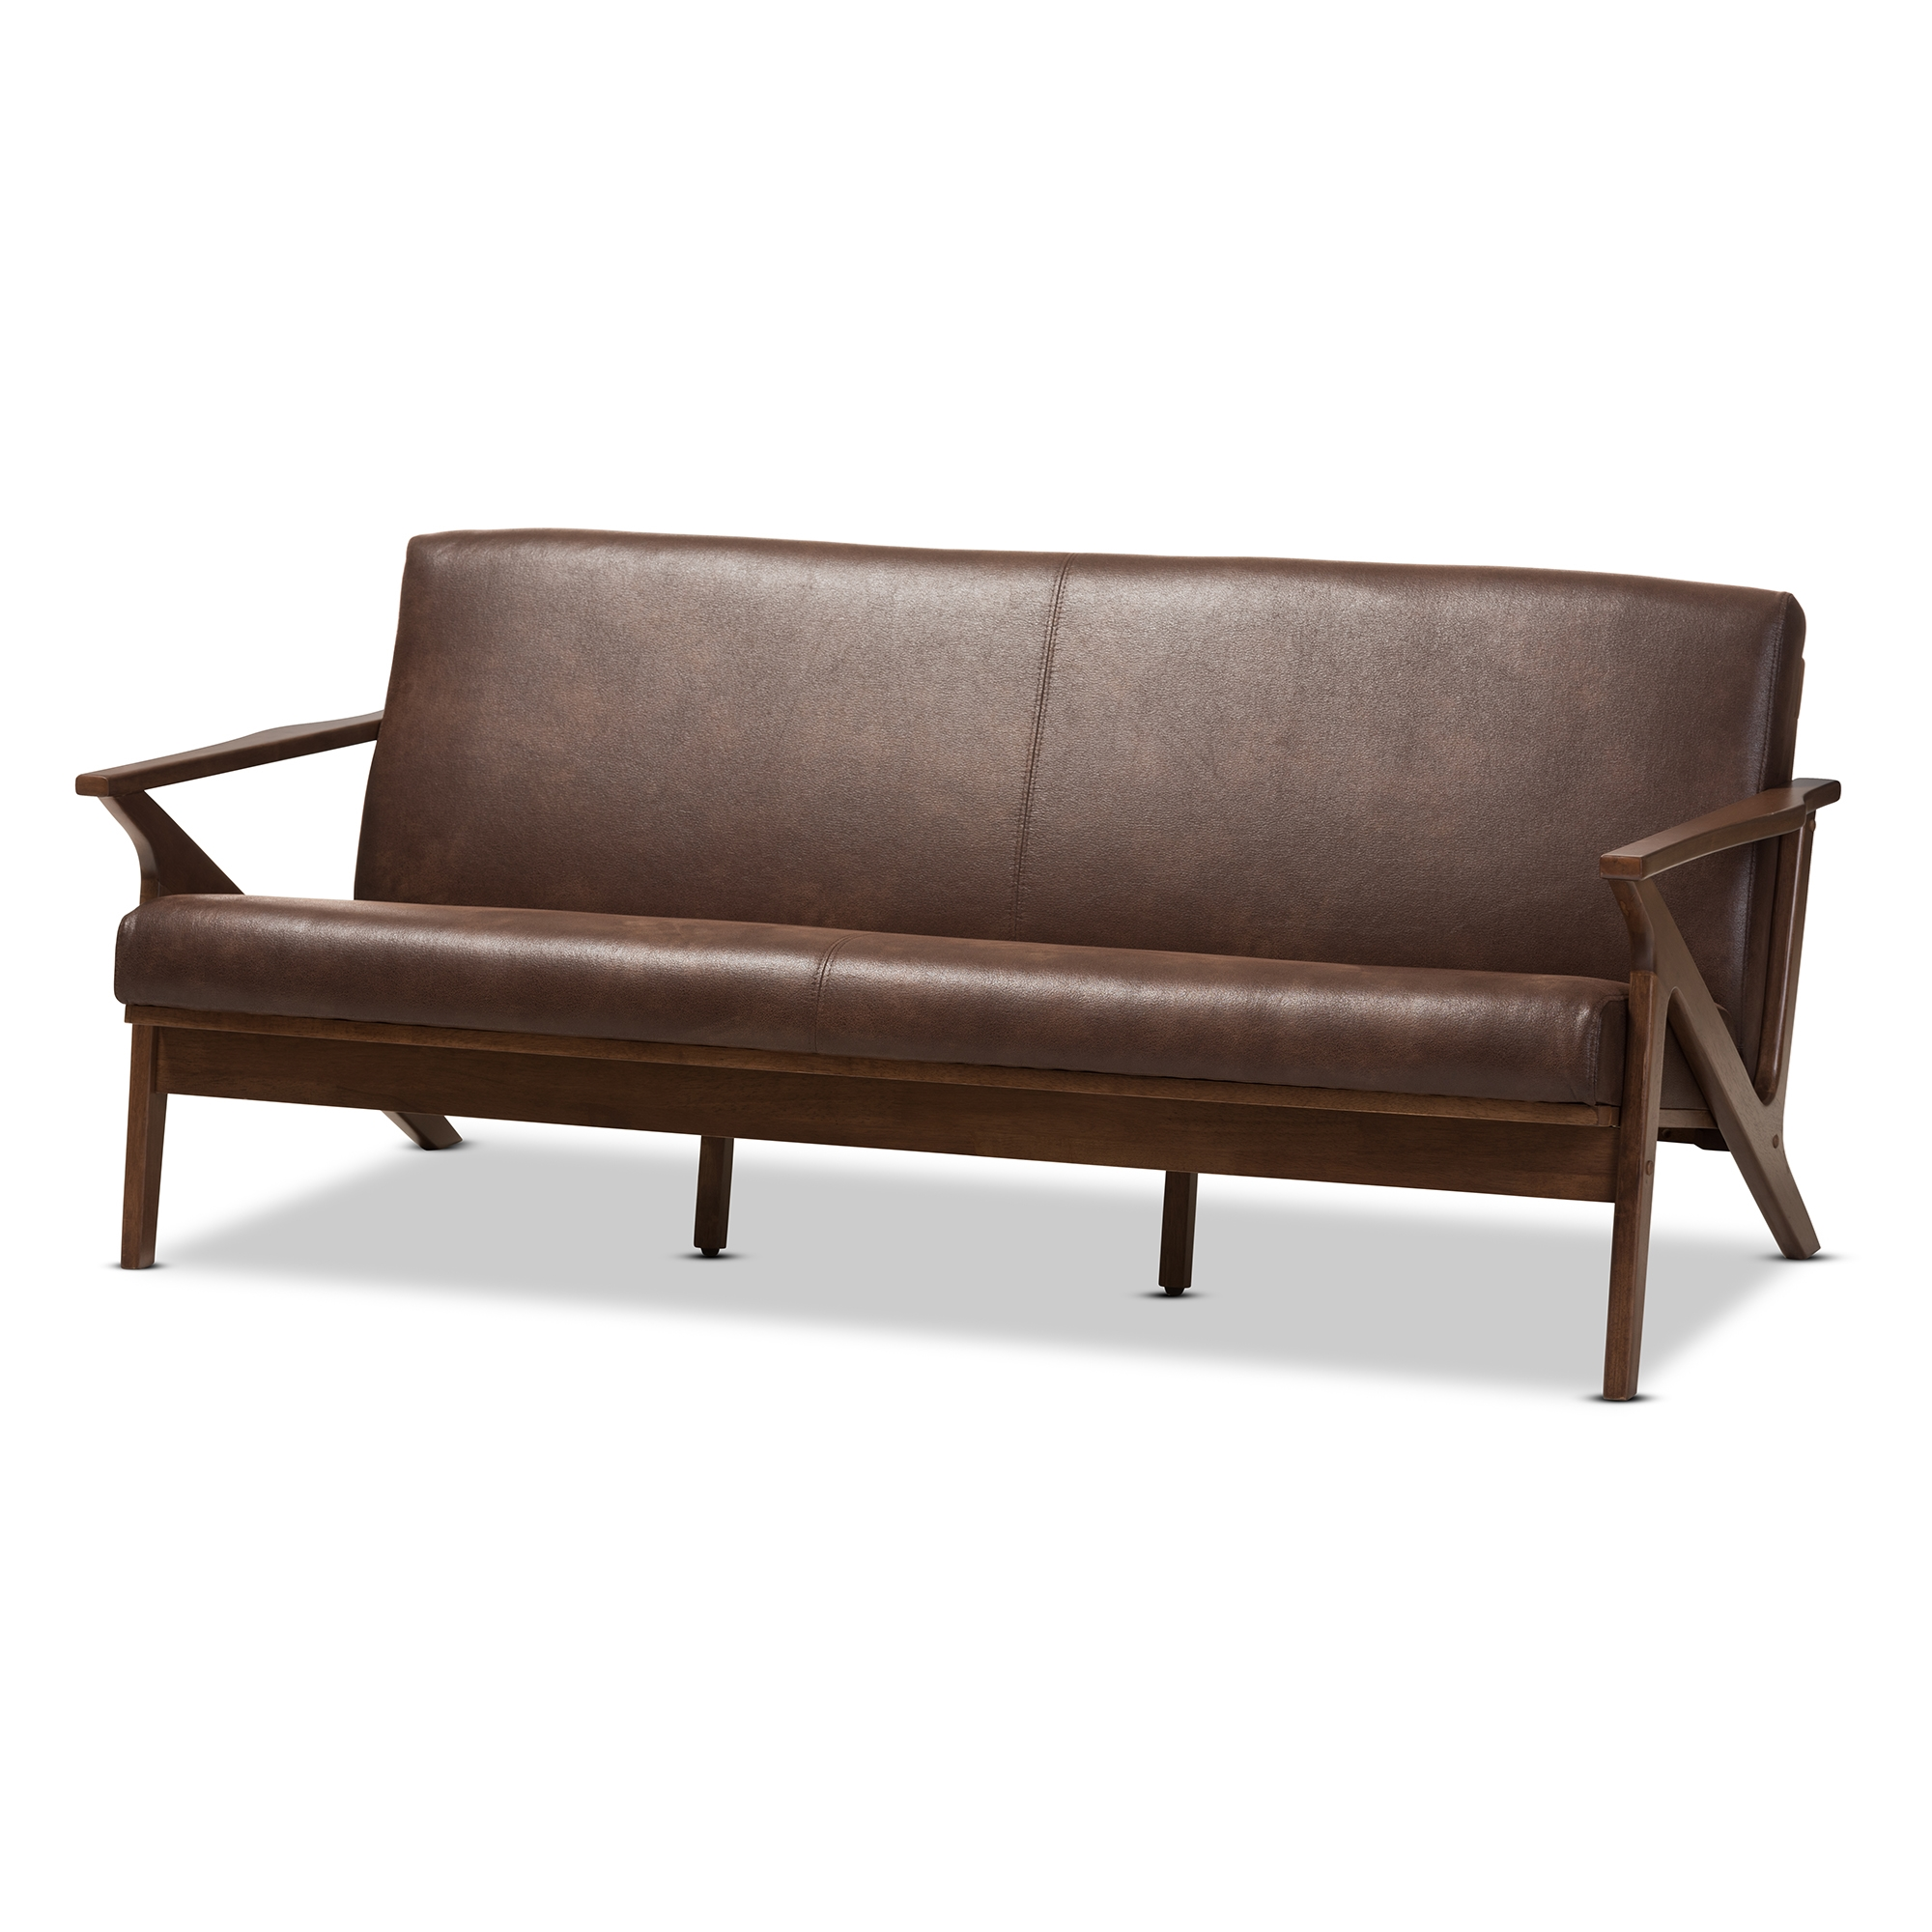 baxton studio bianca midcentury modern walnut wood dark brown distressed faux leather 3